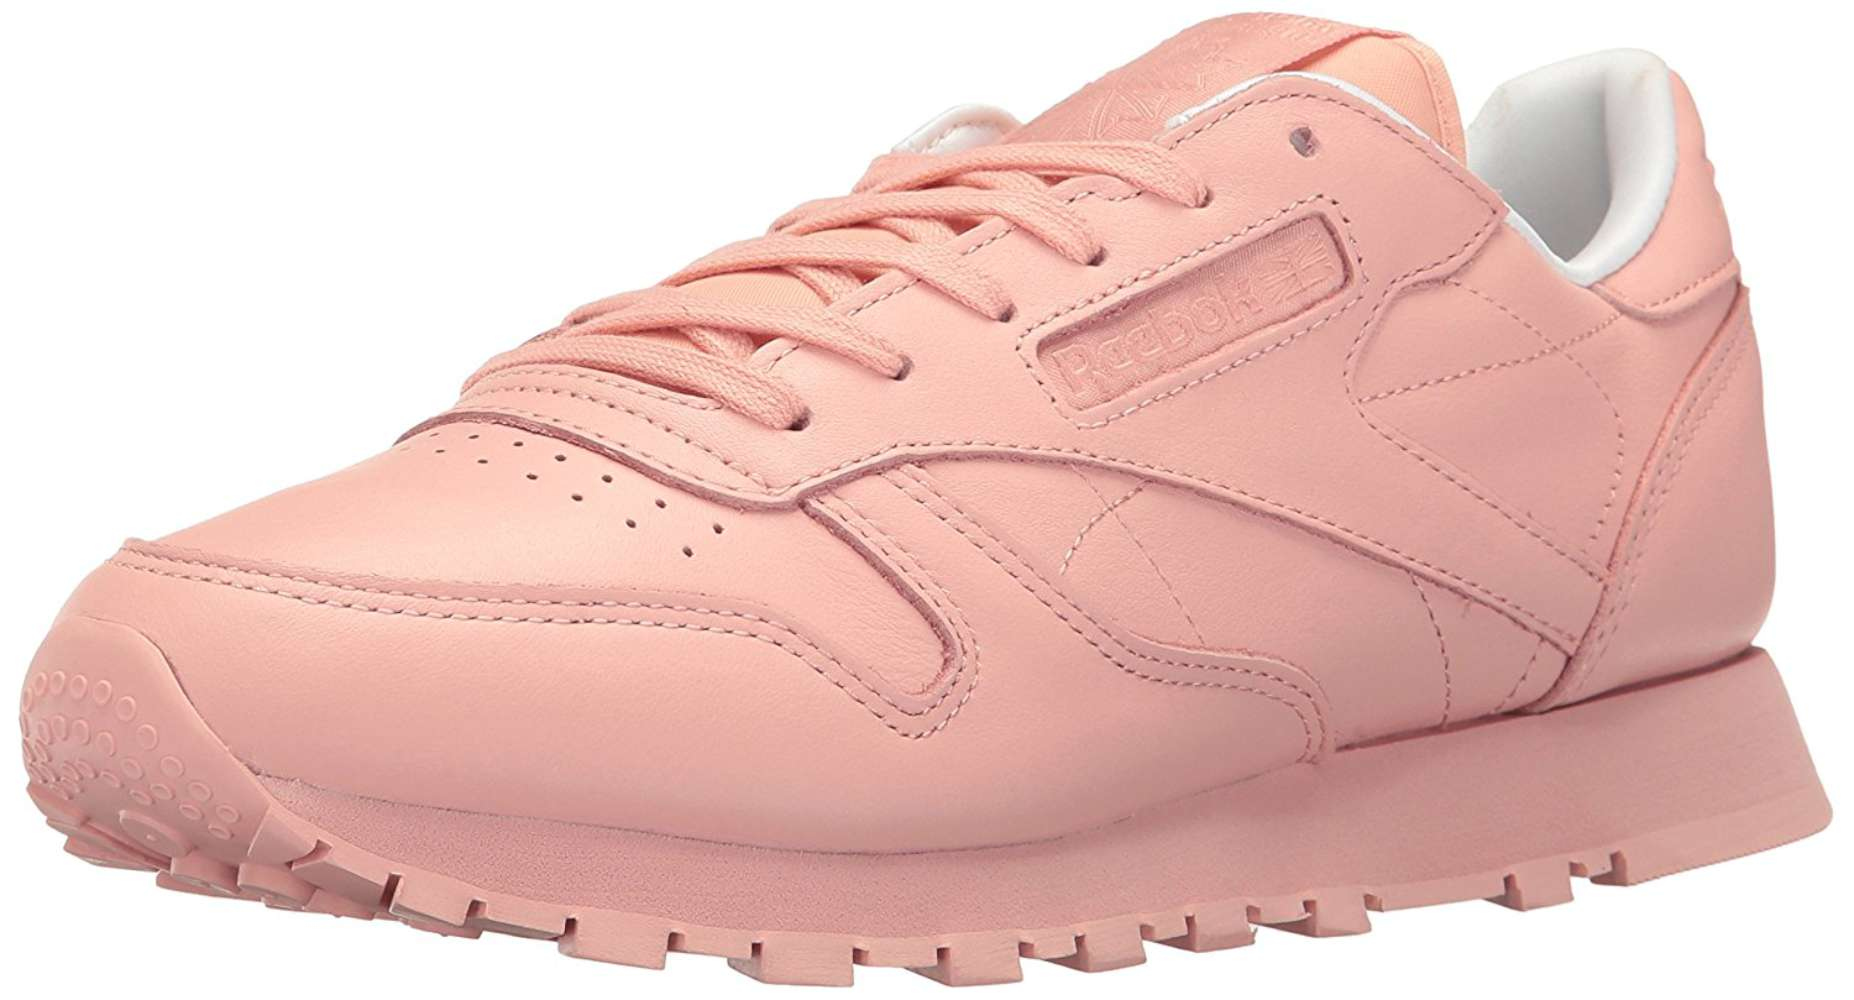 d45bb8909b4 Reebok Womens Classic Leather Low Top Lace Up Running Sneaker